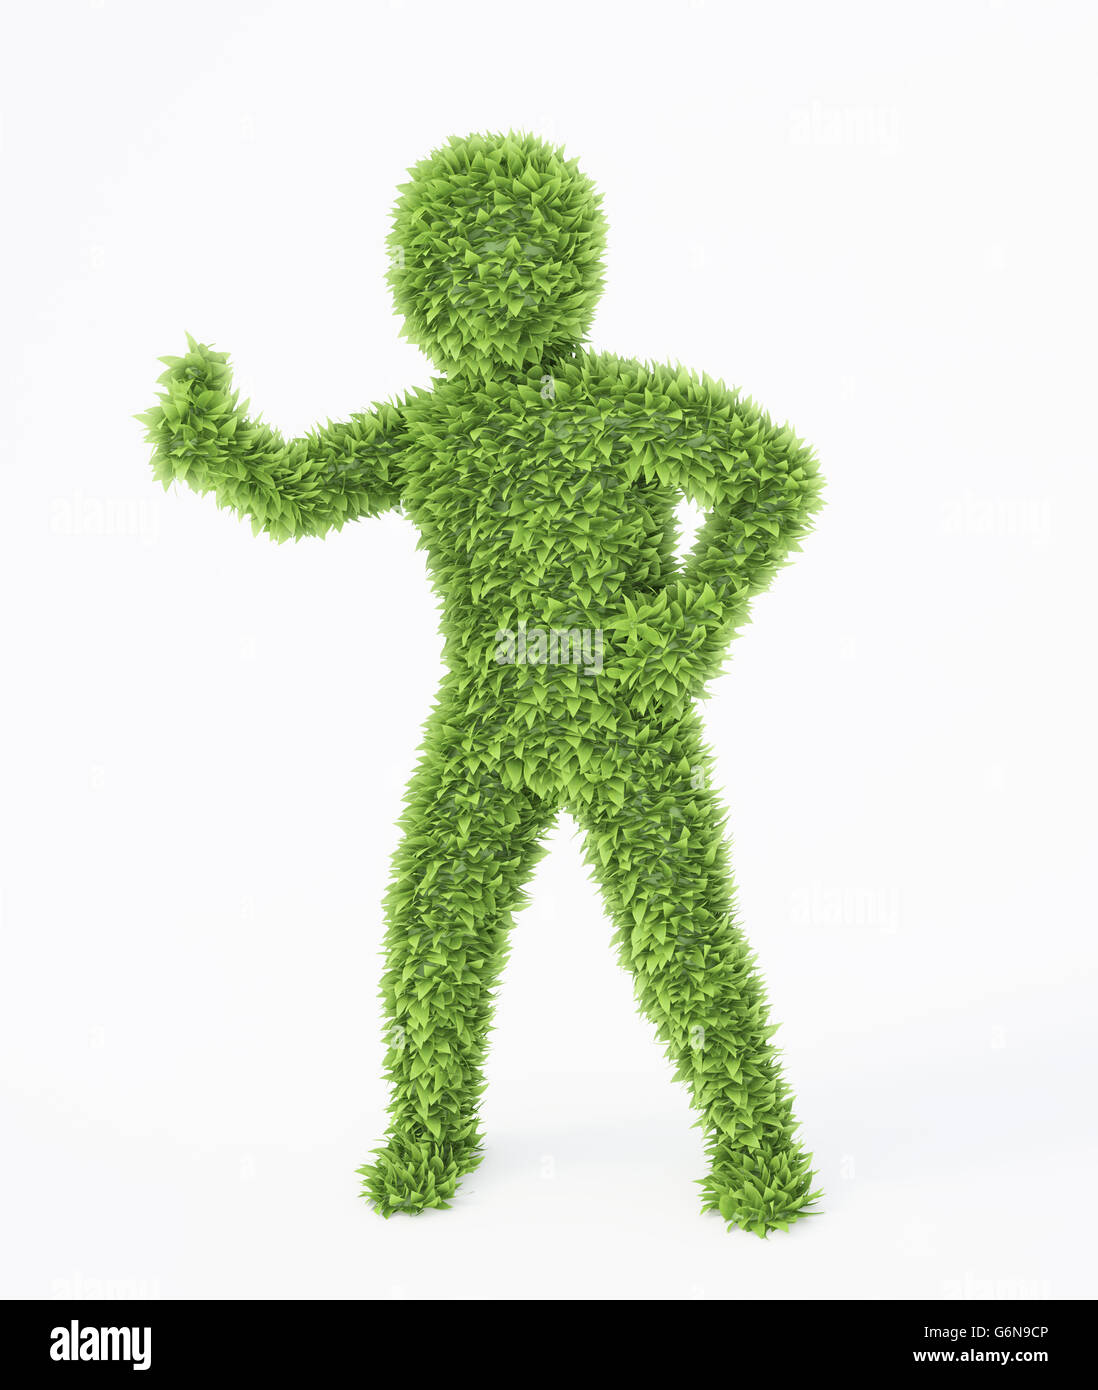 Leaf covered eco friendly 3D character - Stock Image